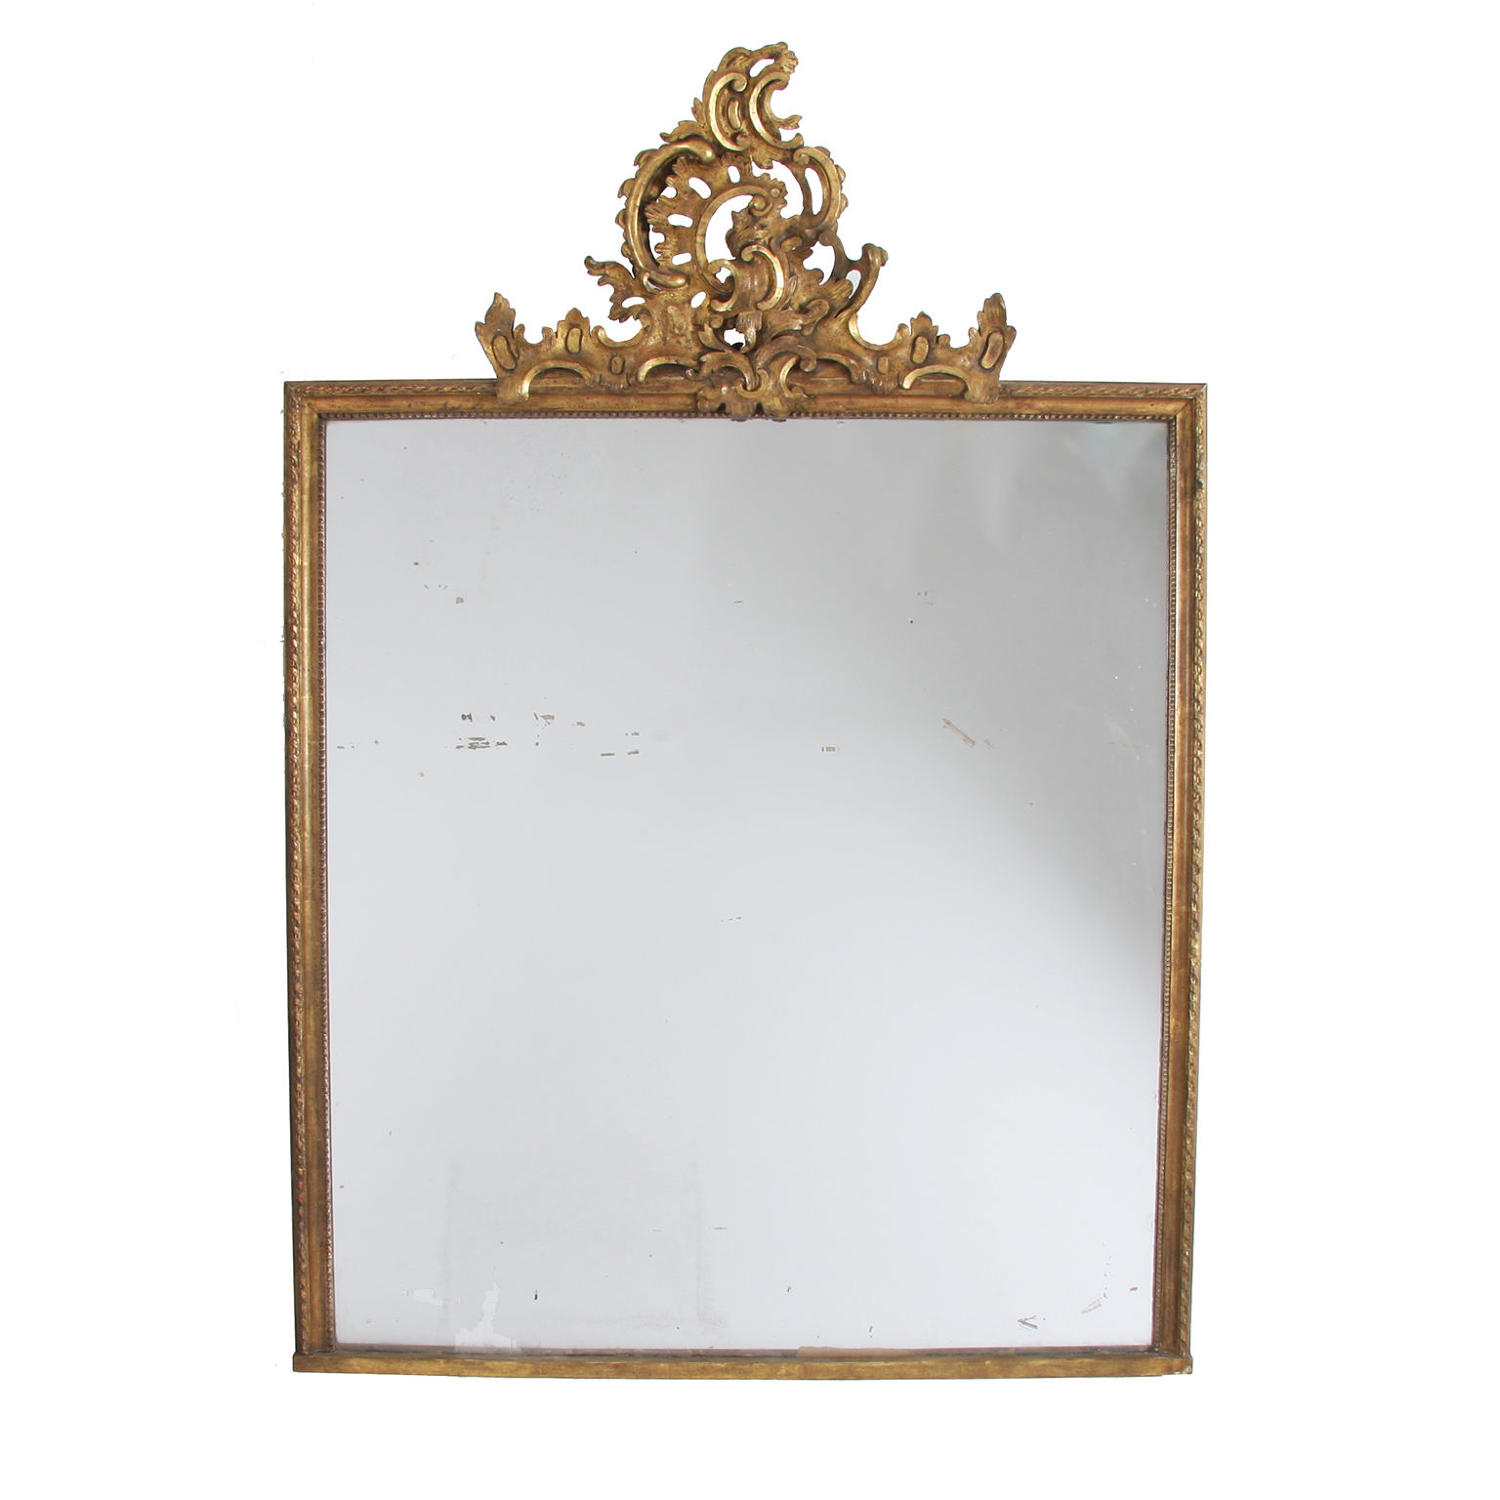 Giltwood Overmantle Mirror with Crest